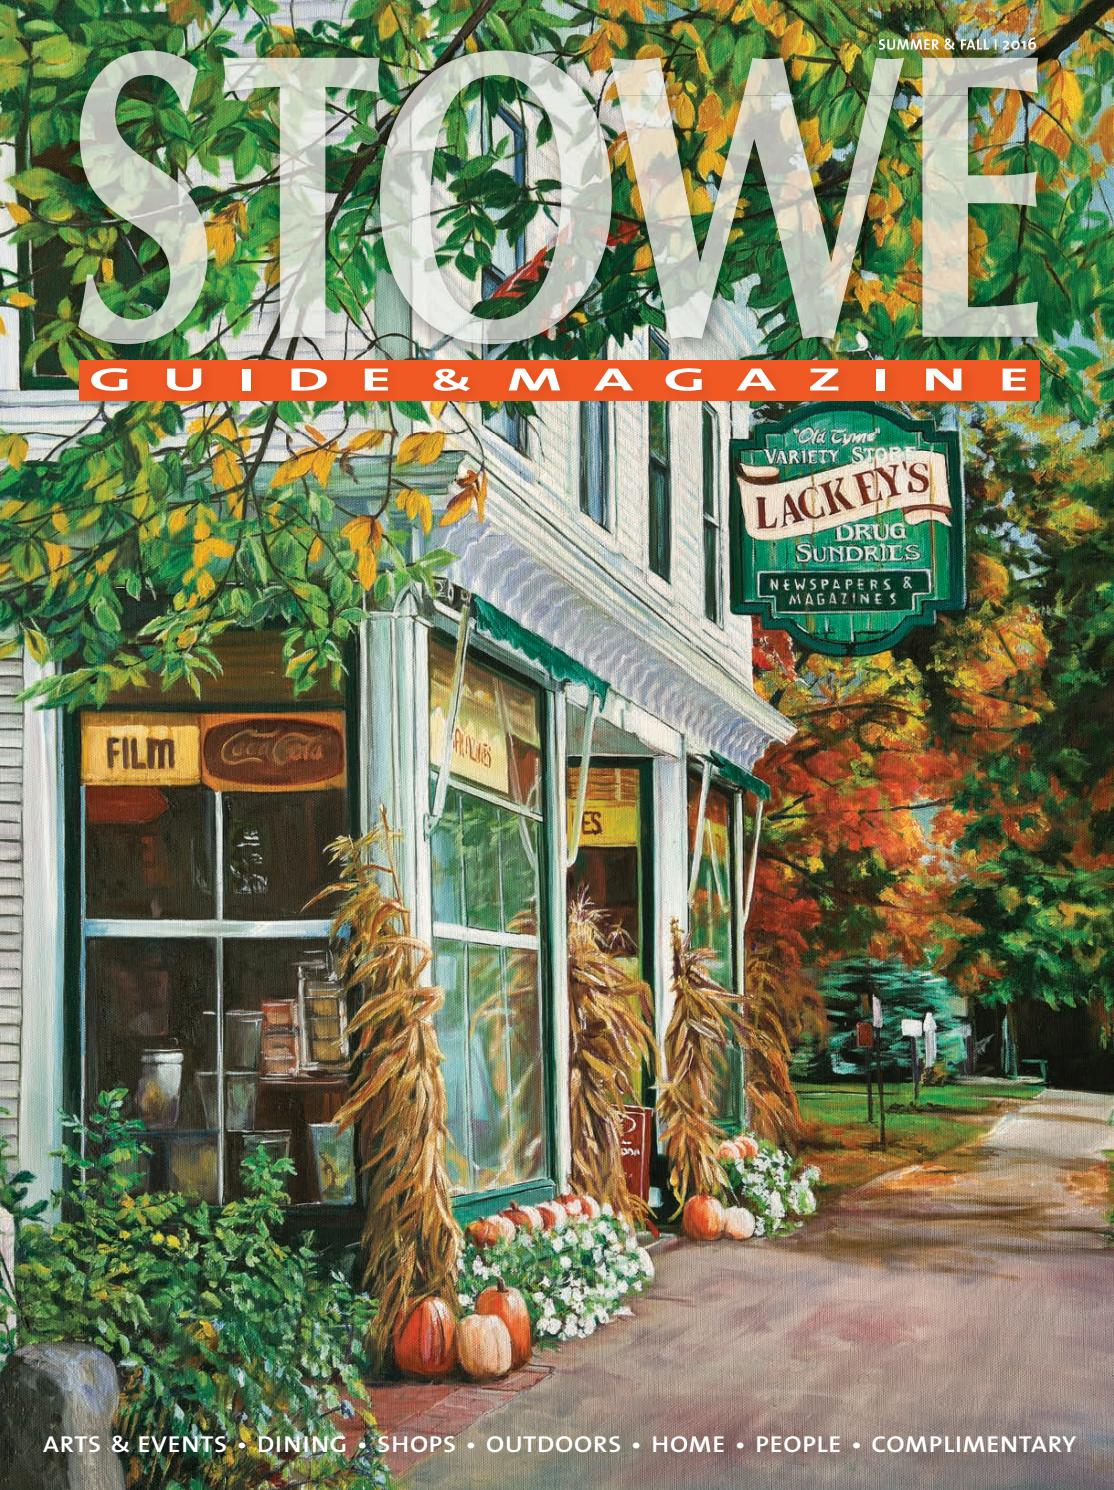 13537fa81f3a0c Stowe Guide & Magazine Summer / Fall 2016 by Stowe Guide & Magazine ...